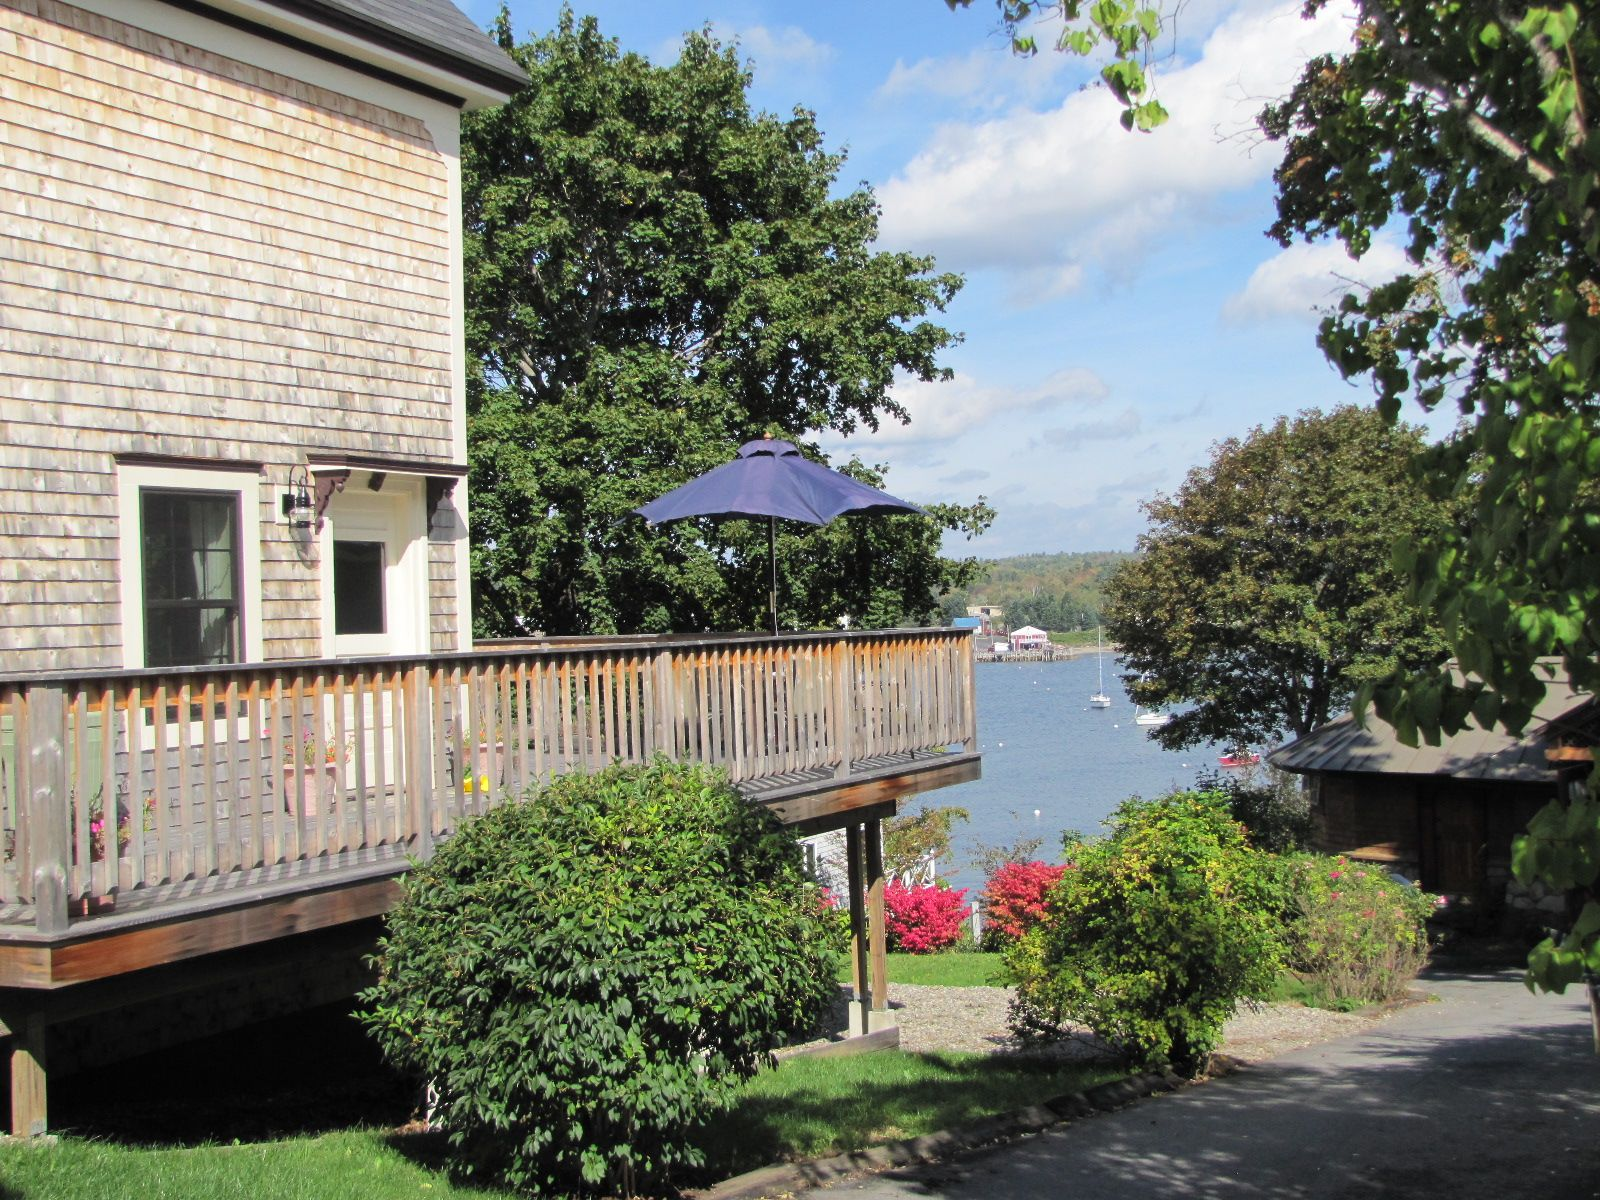 Real Estate Listing - Belfast, Maine - Views of Belfast Harbor